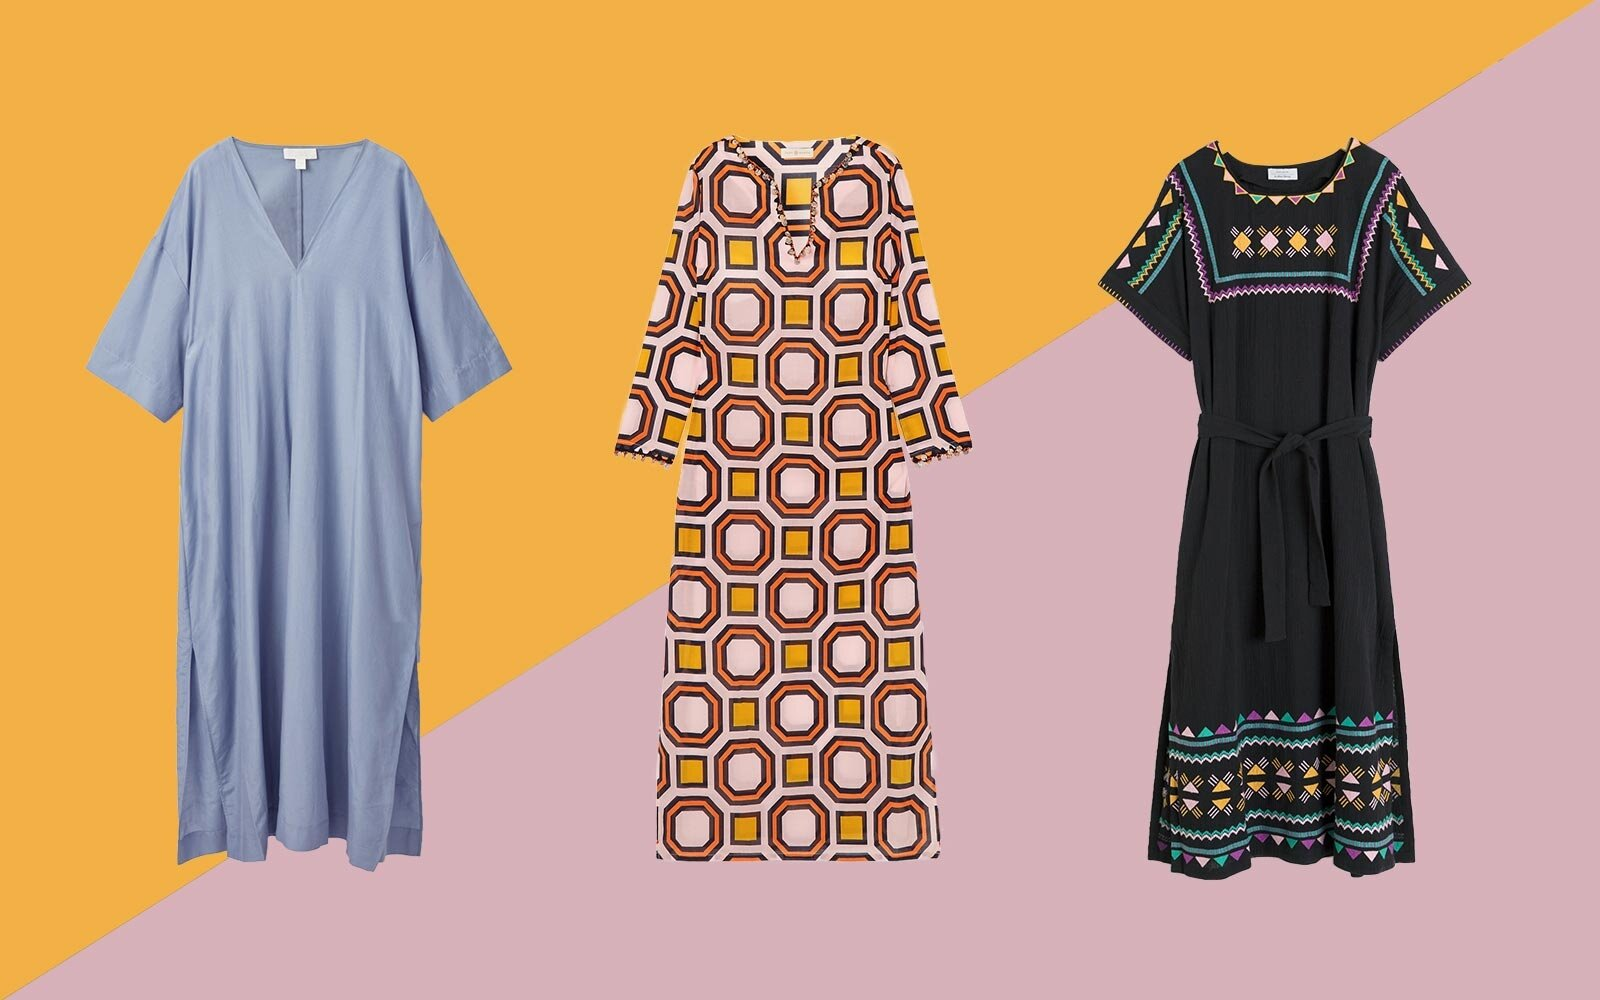 c0e3916ae Stylish Caftan Dresses You'll Bring on Every Beach Vacation | Travel ...